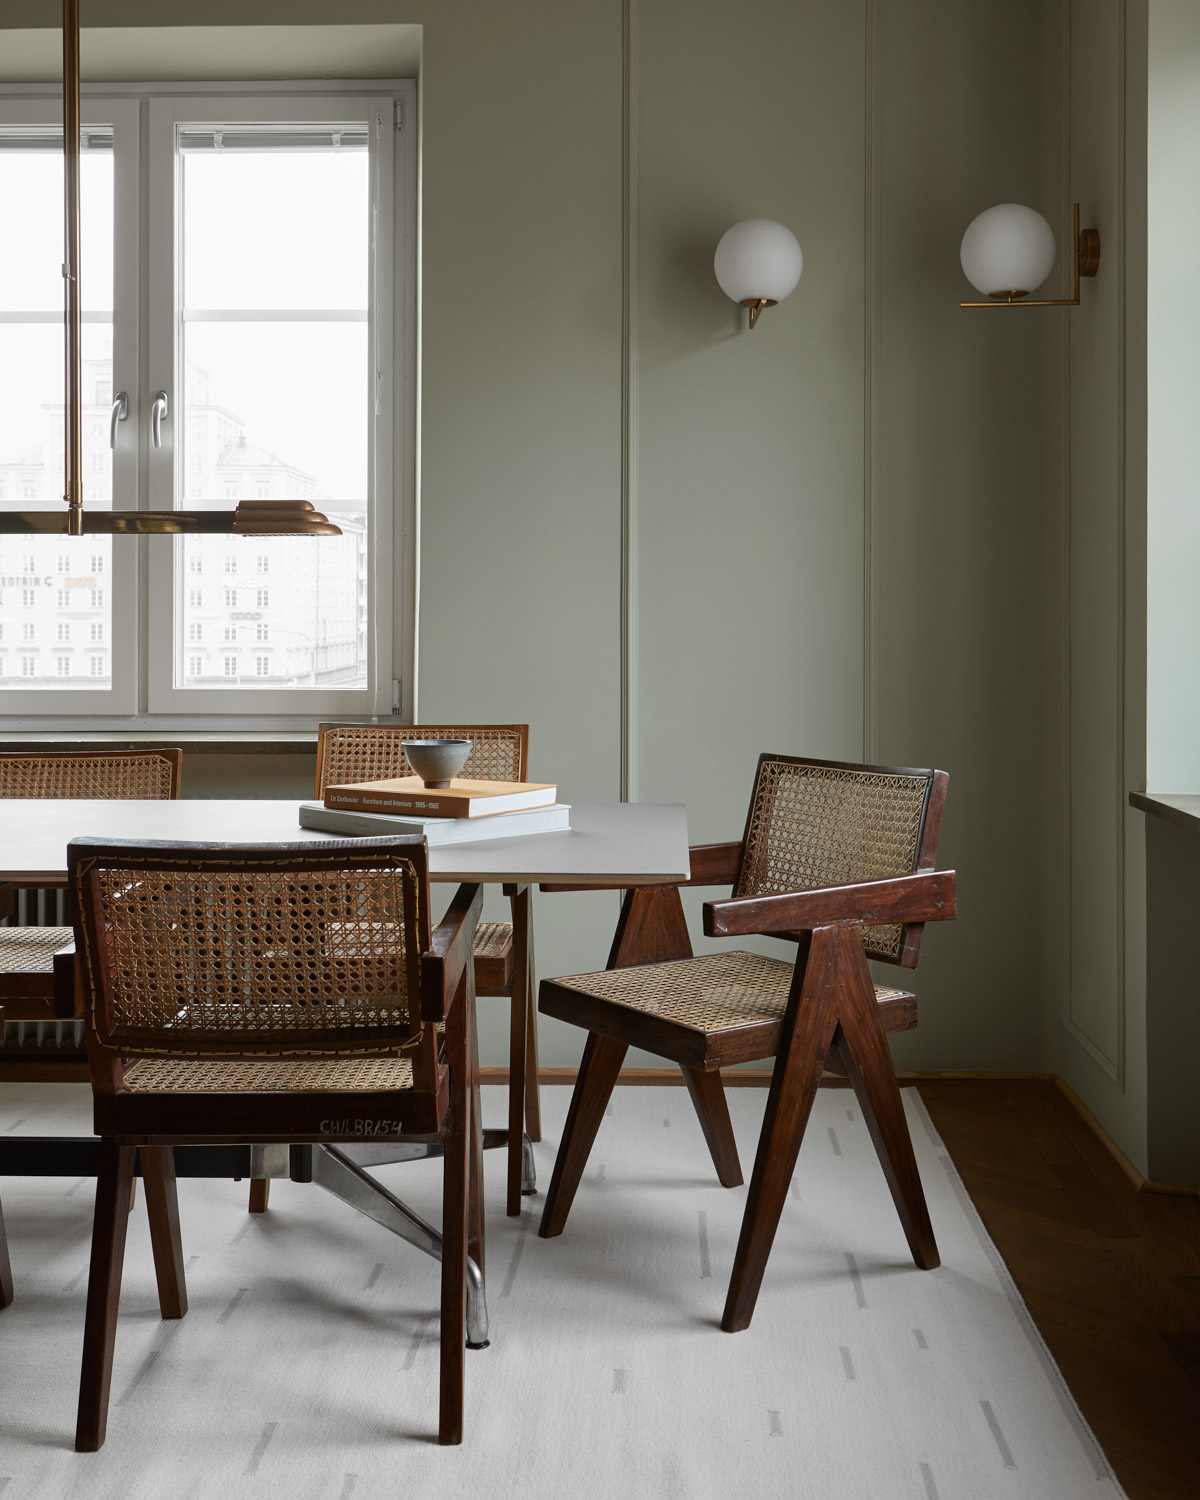 The Rain flat-weave rug in Dusty White in dining-room with vintage designer chairs